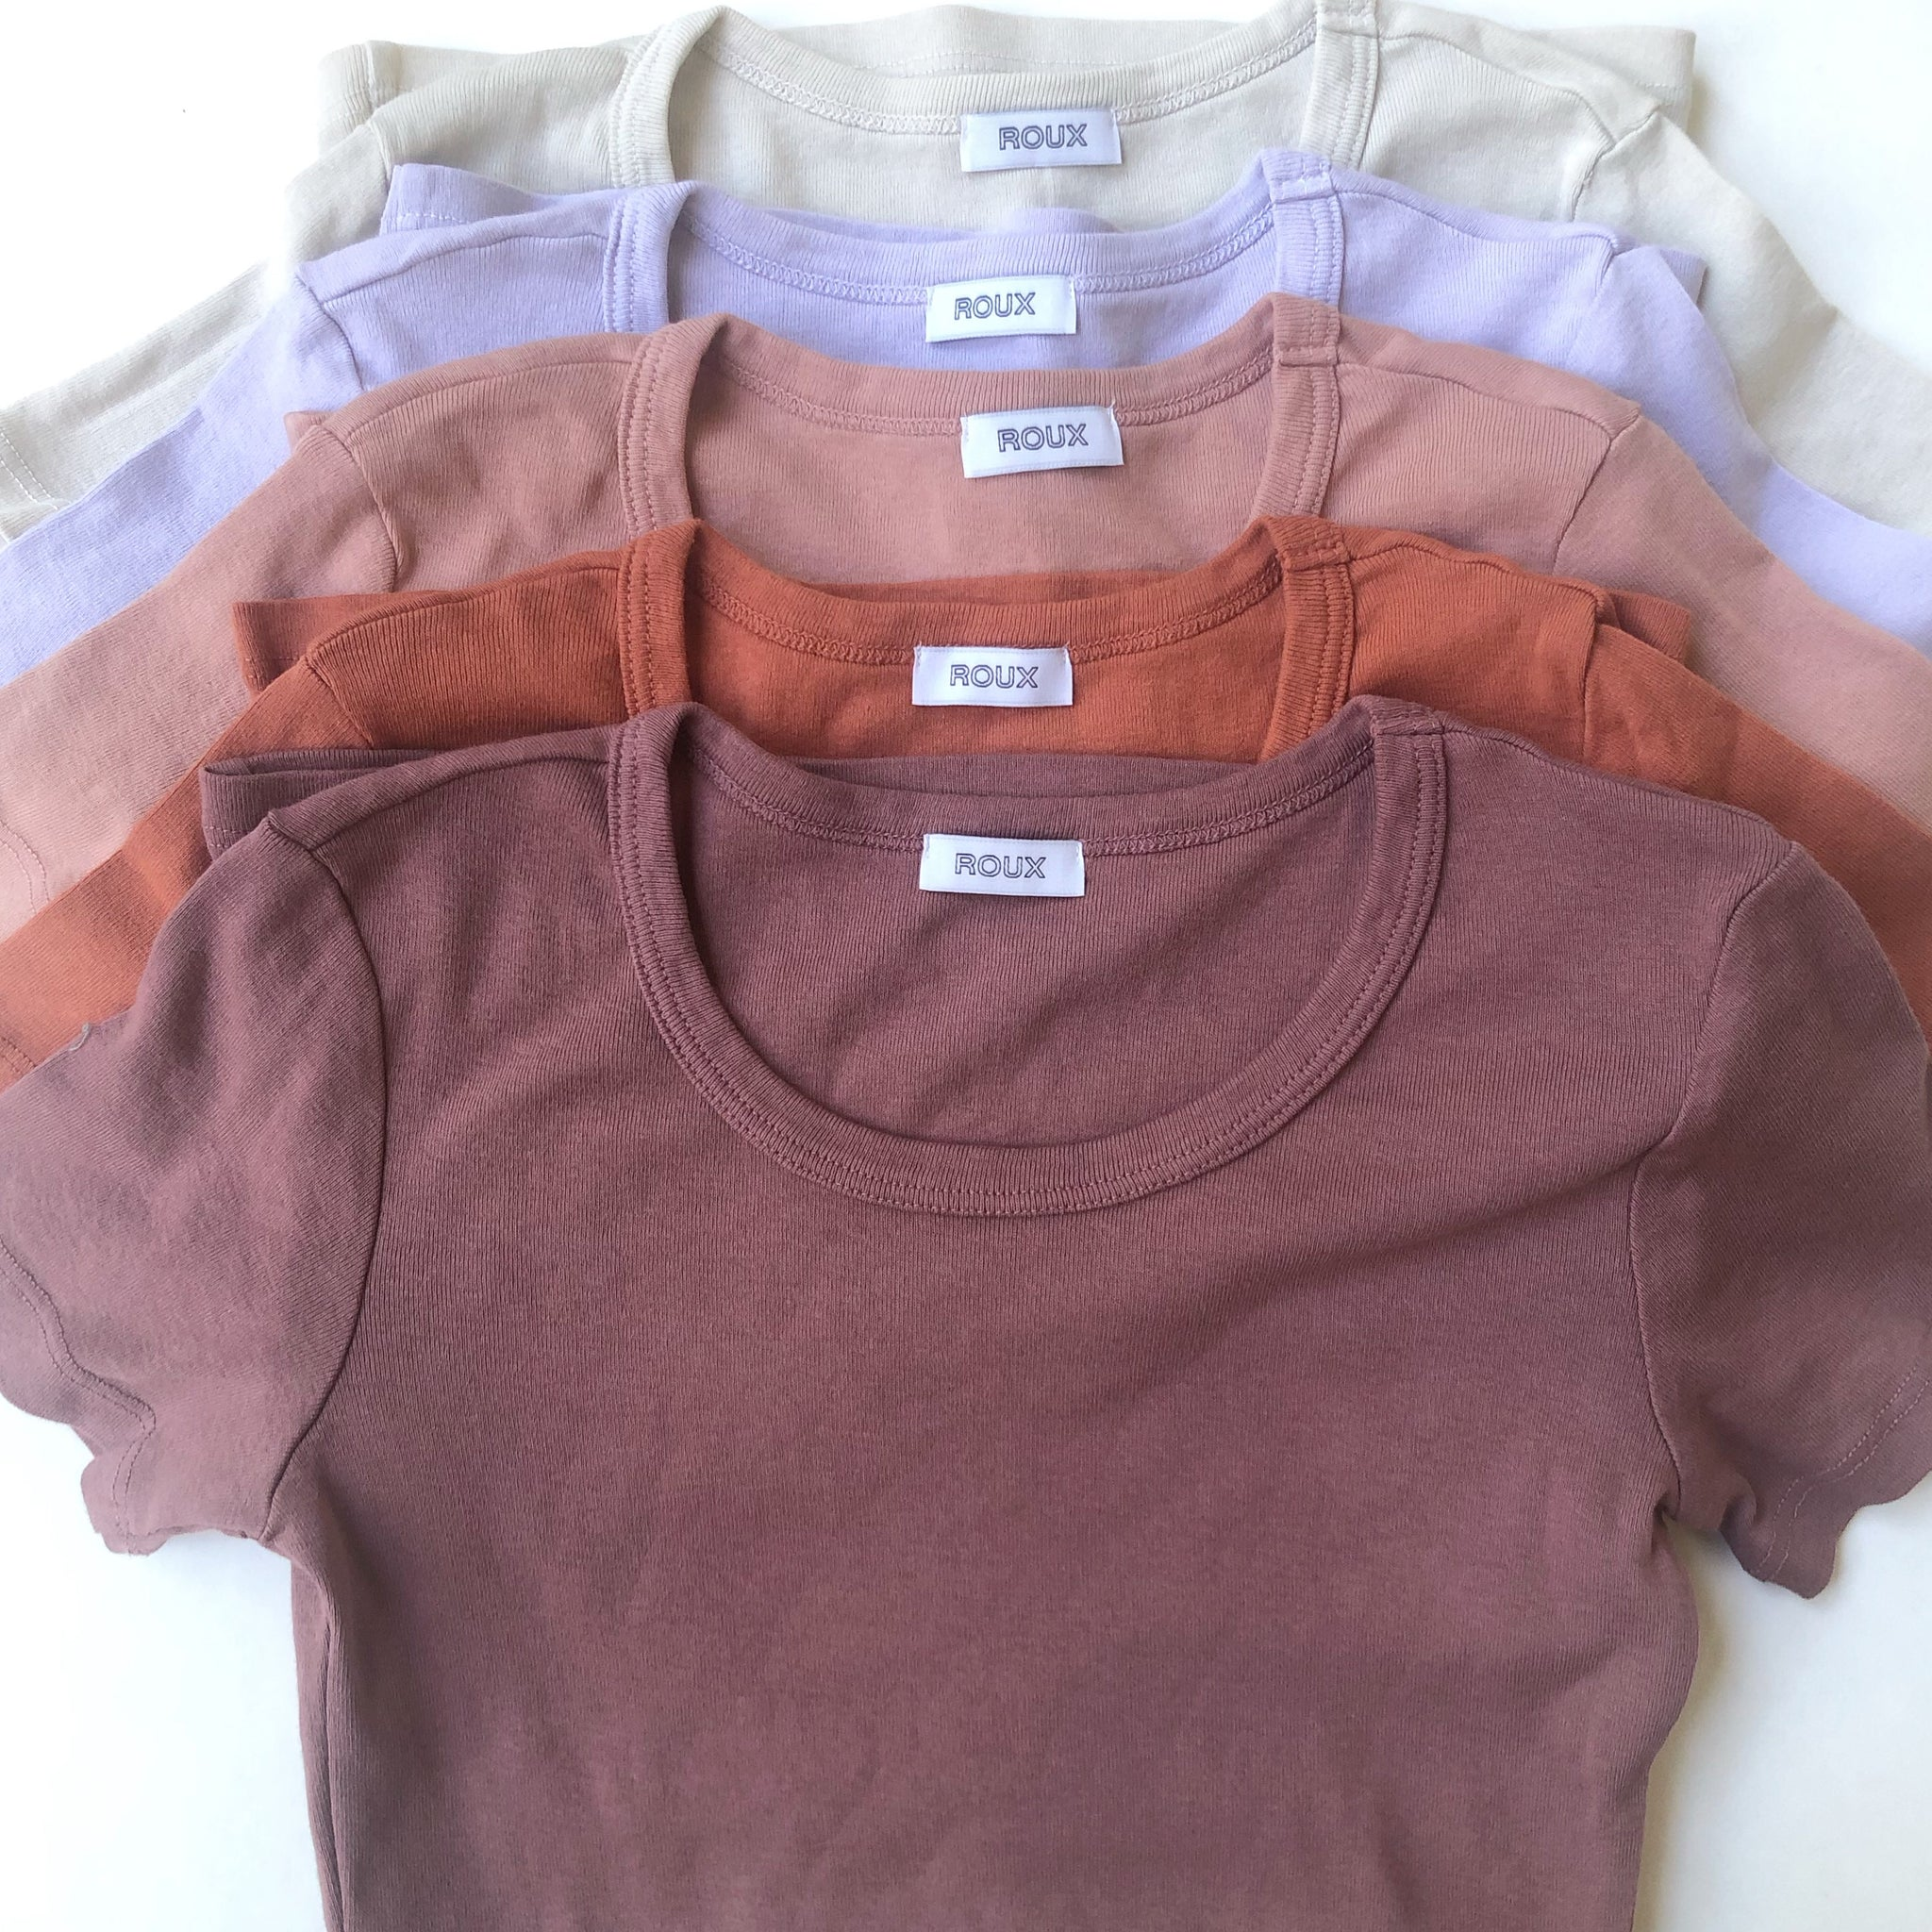 Women's Cotton Ribbed T-shirt